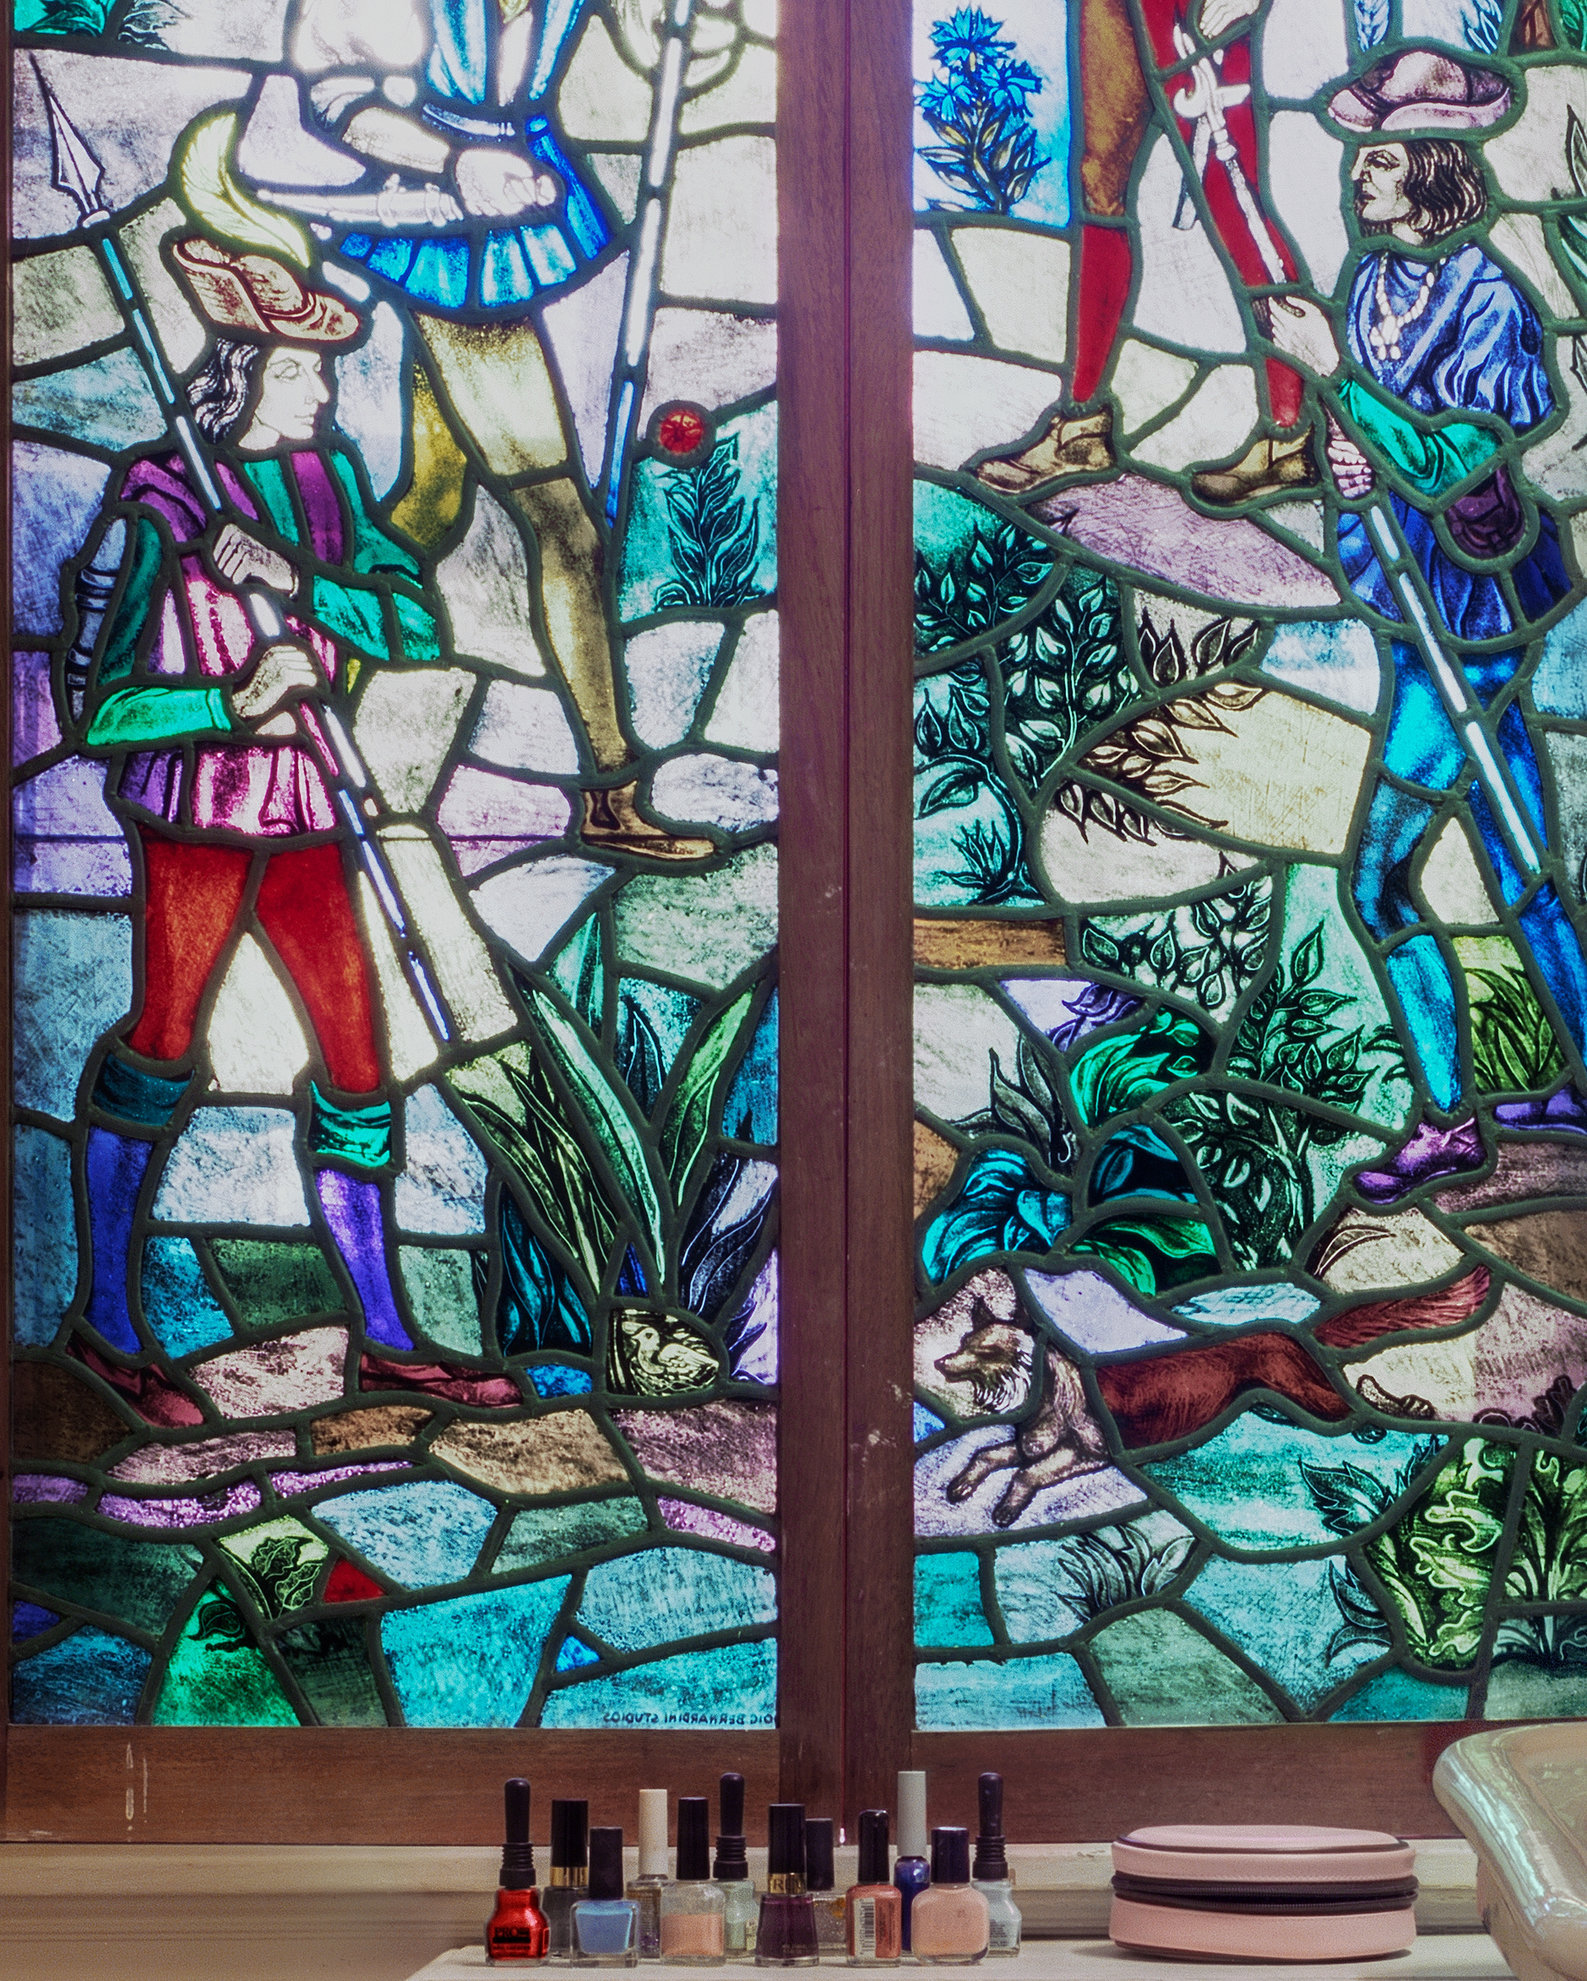 Stained glass in bathroom detail